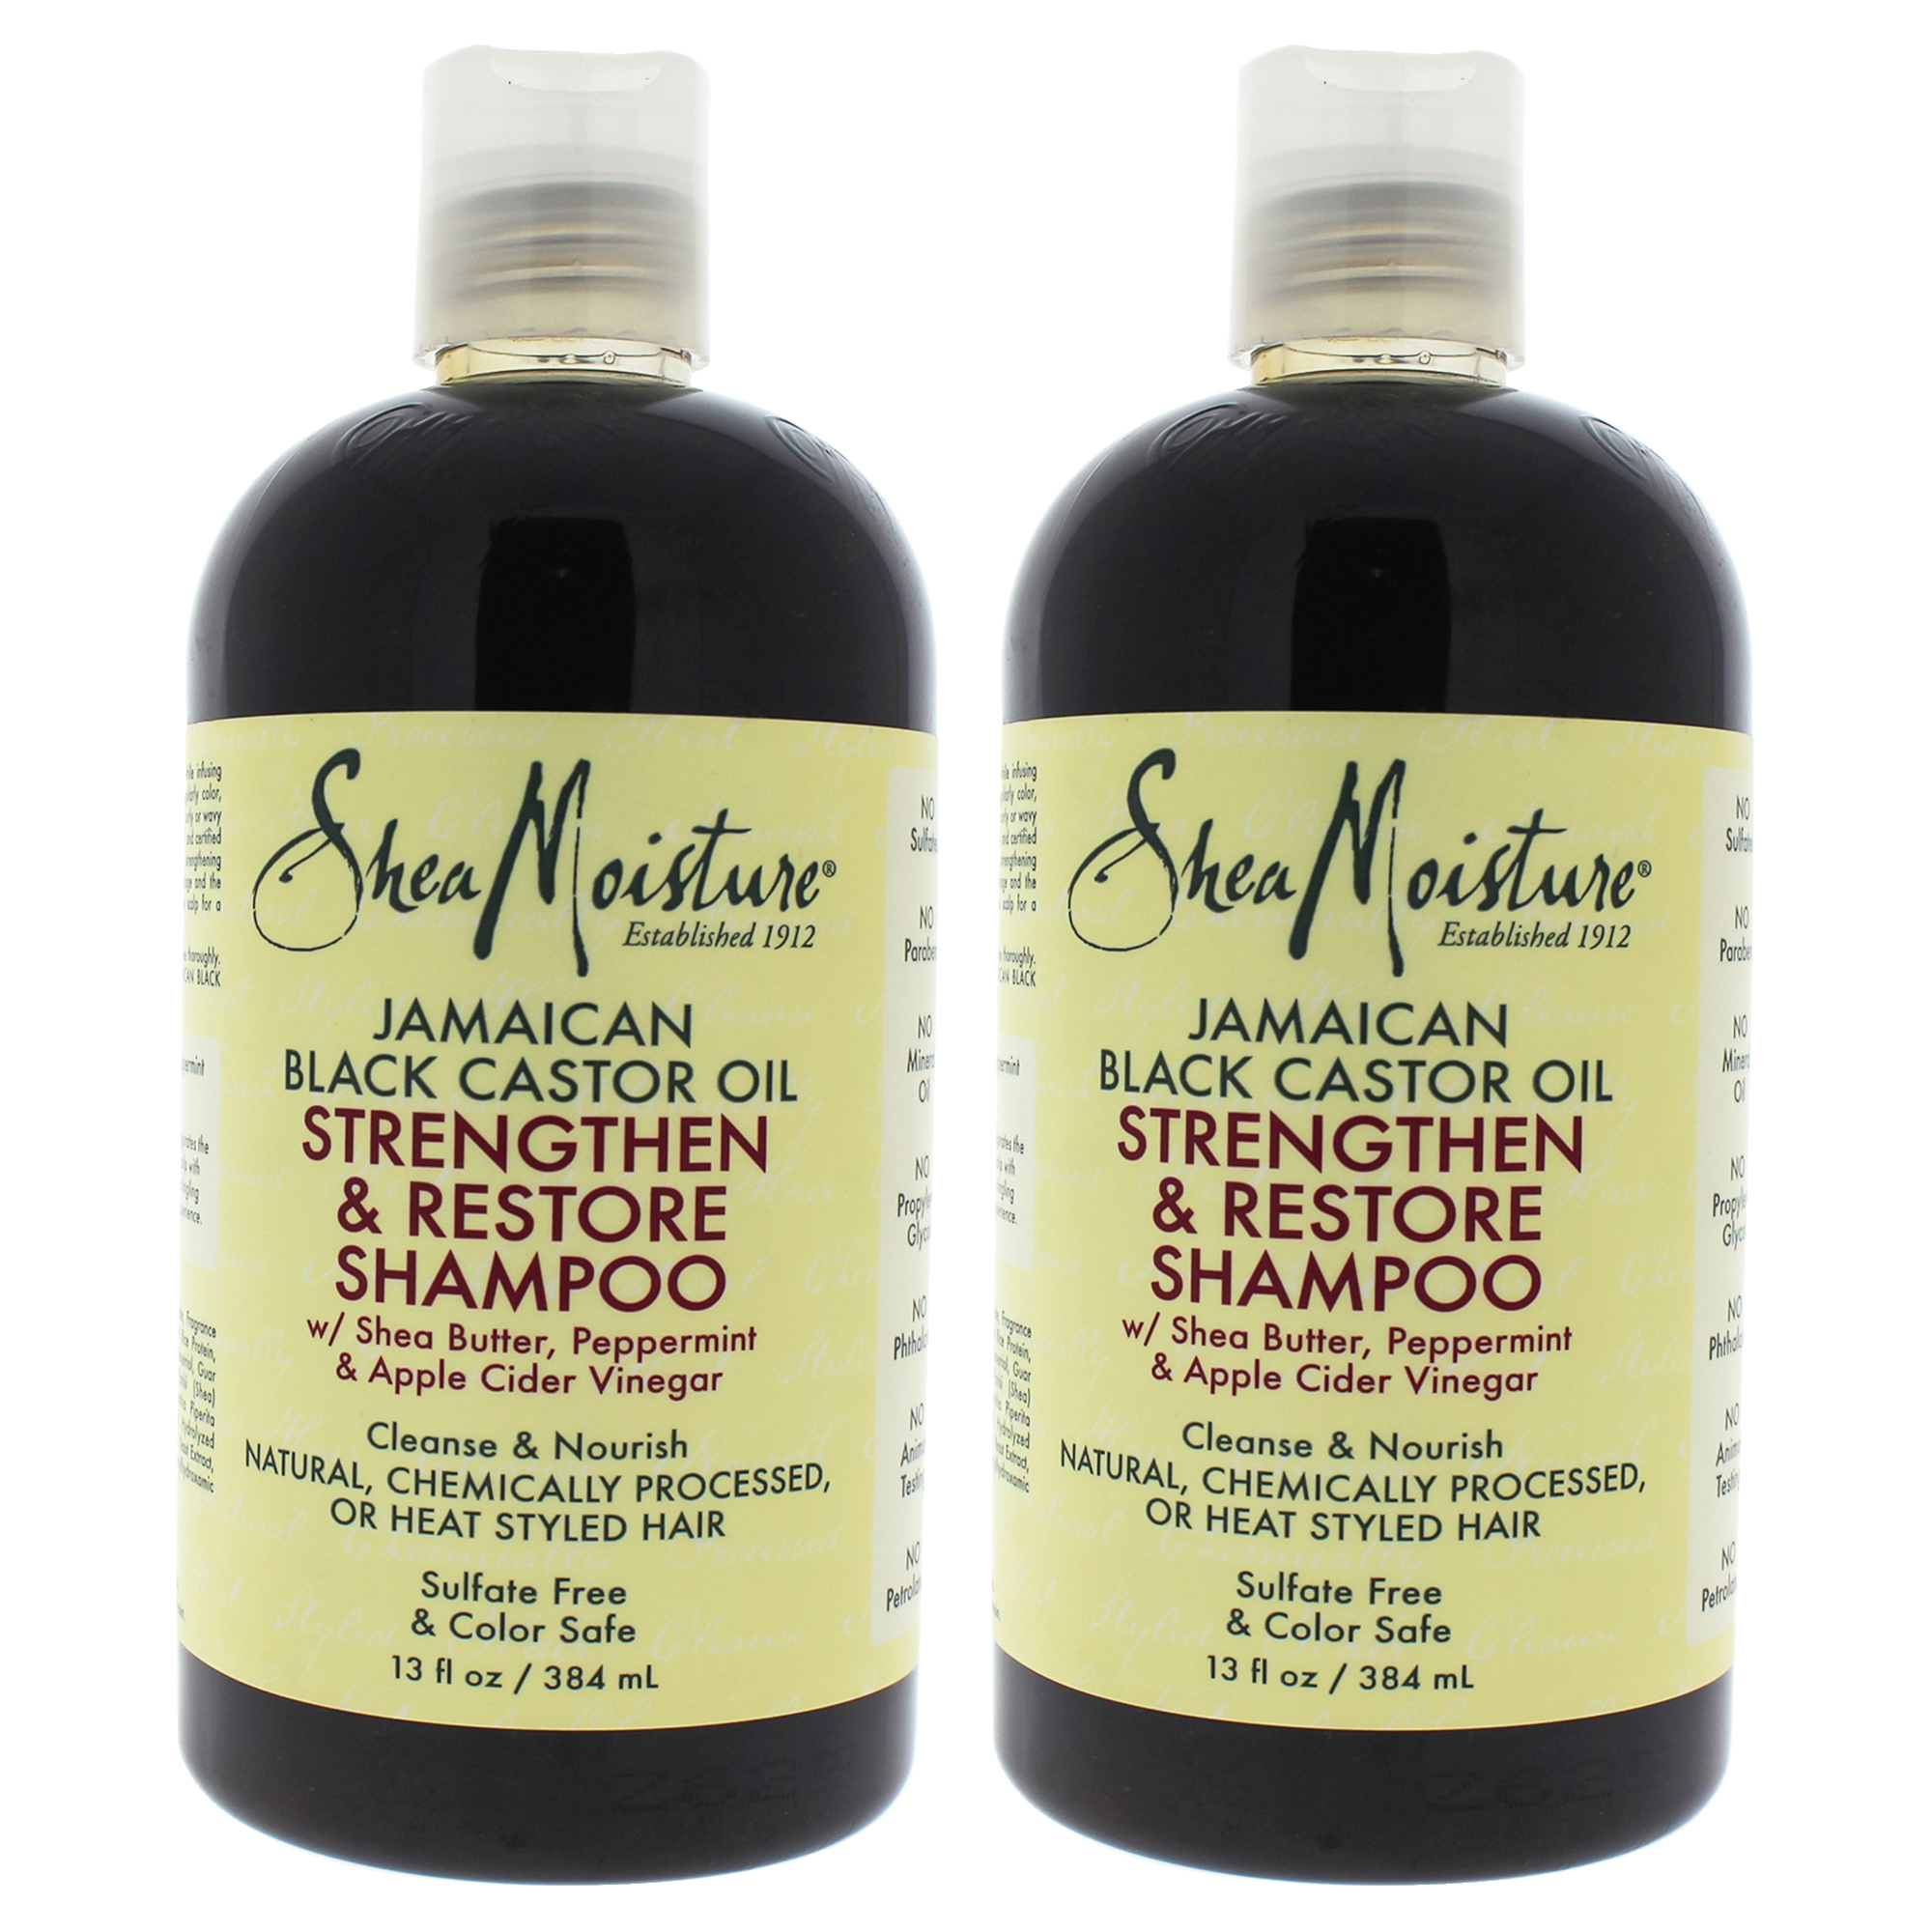 Jamaican Black Castor Oil Strengthen, Grow And Restore Shampoo by Shea Moisture for Unisex - 13 oz Shampoo - Pack of 2